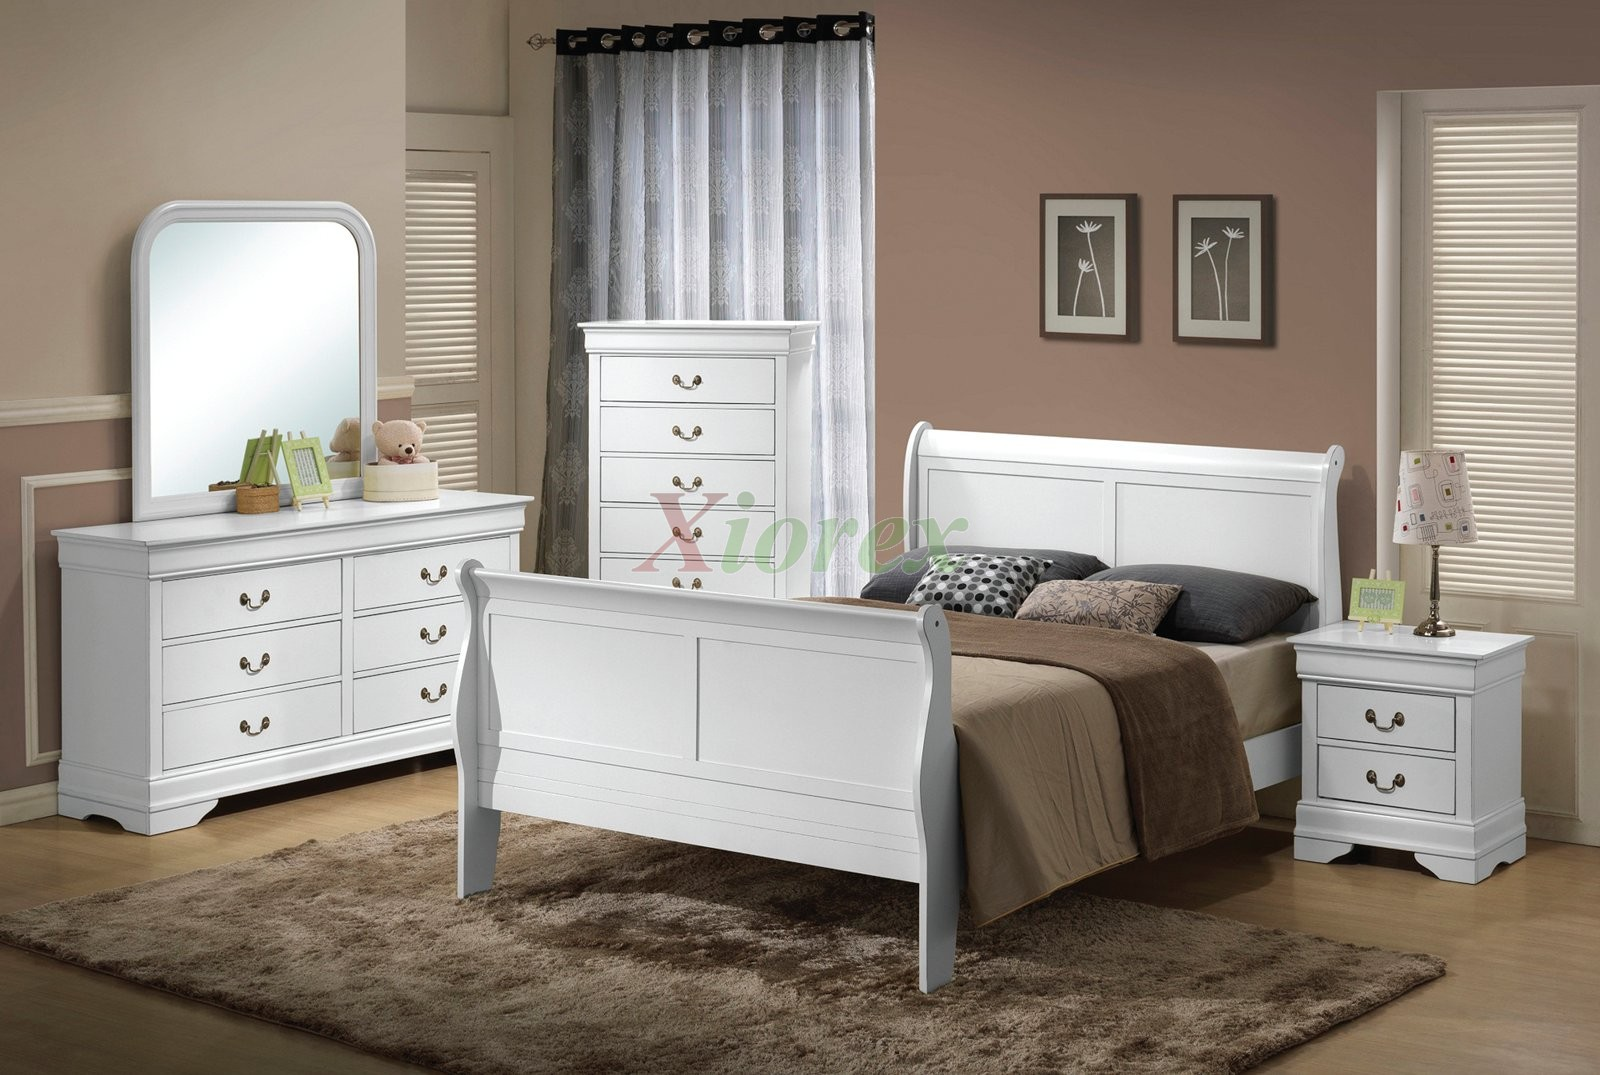 Semi-gloss Sleigh Like Bedroom Furniture Set 170 in Cherry Black White